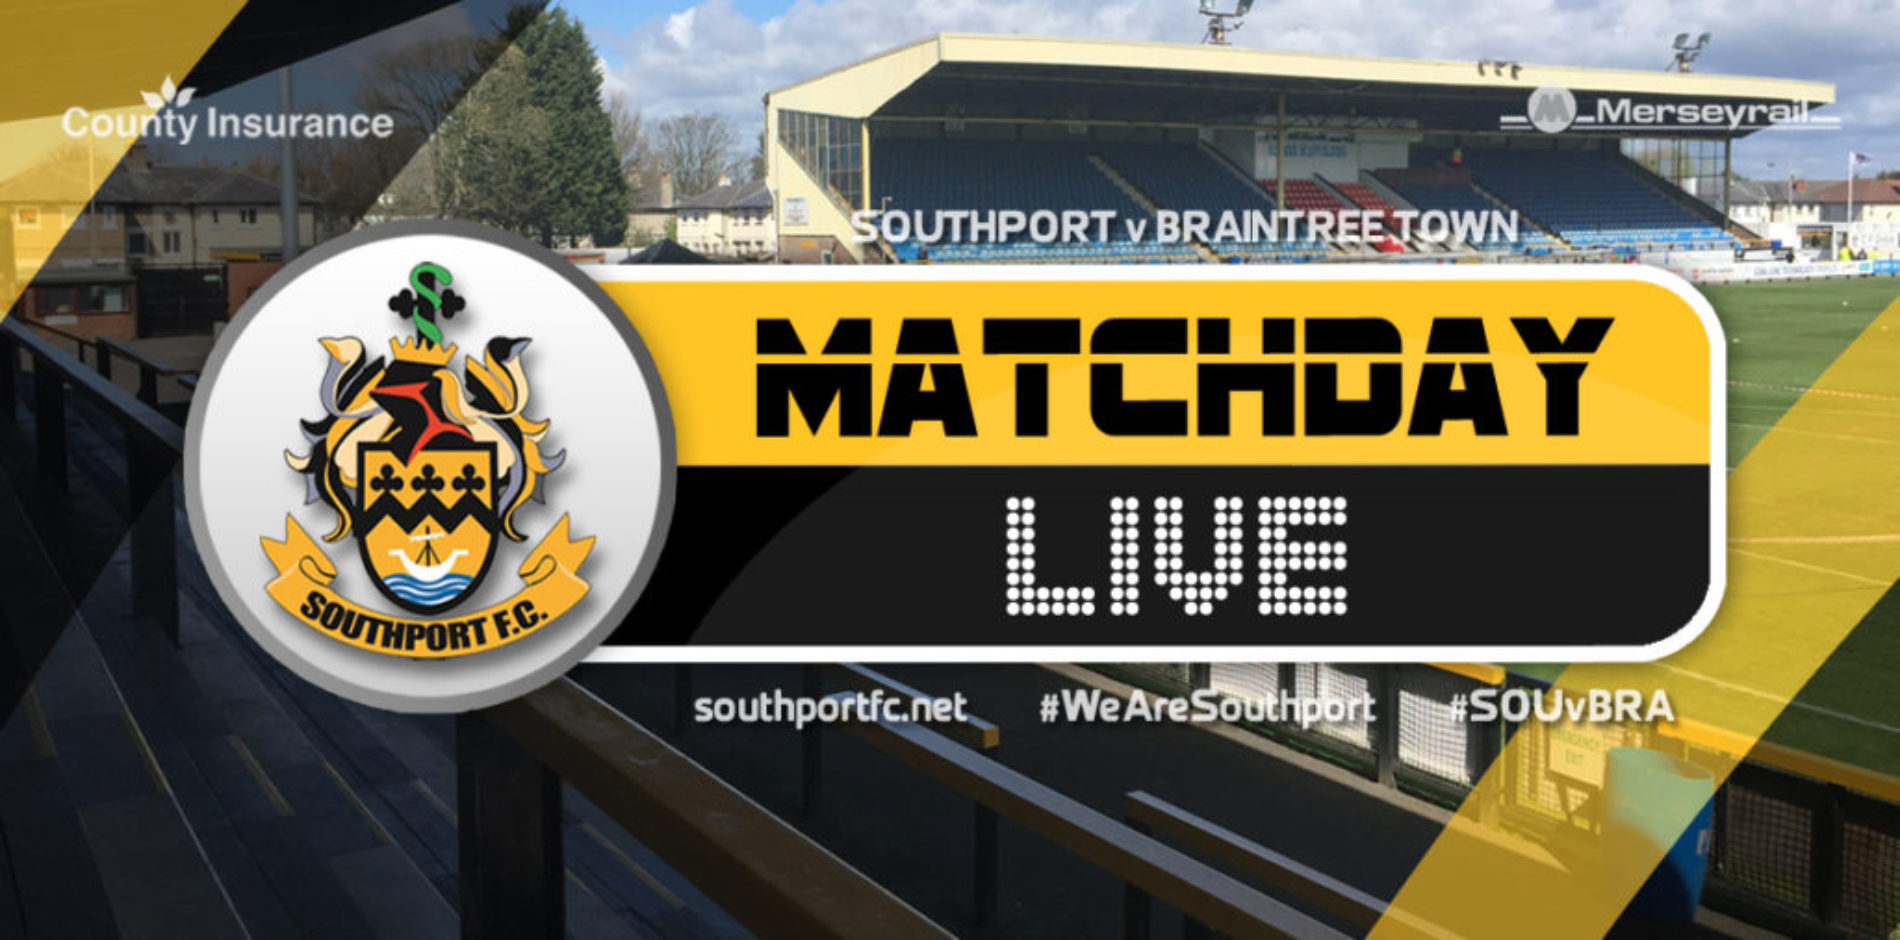 MATCHDAY LIVE | Southport V Braintree Town